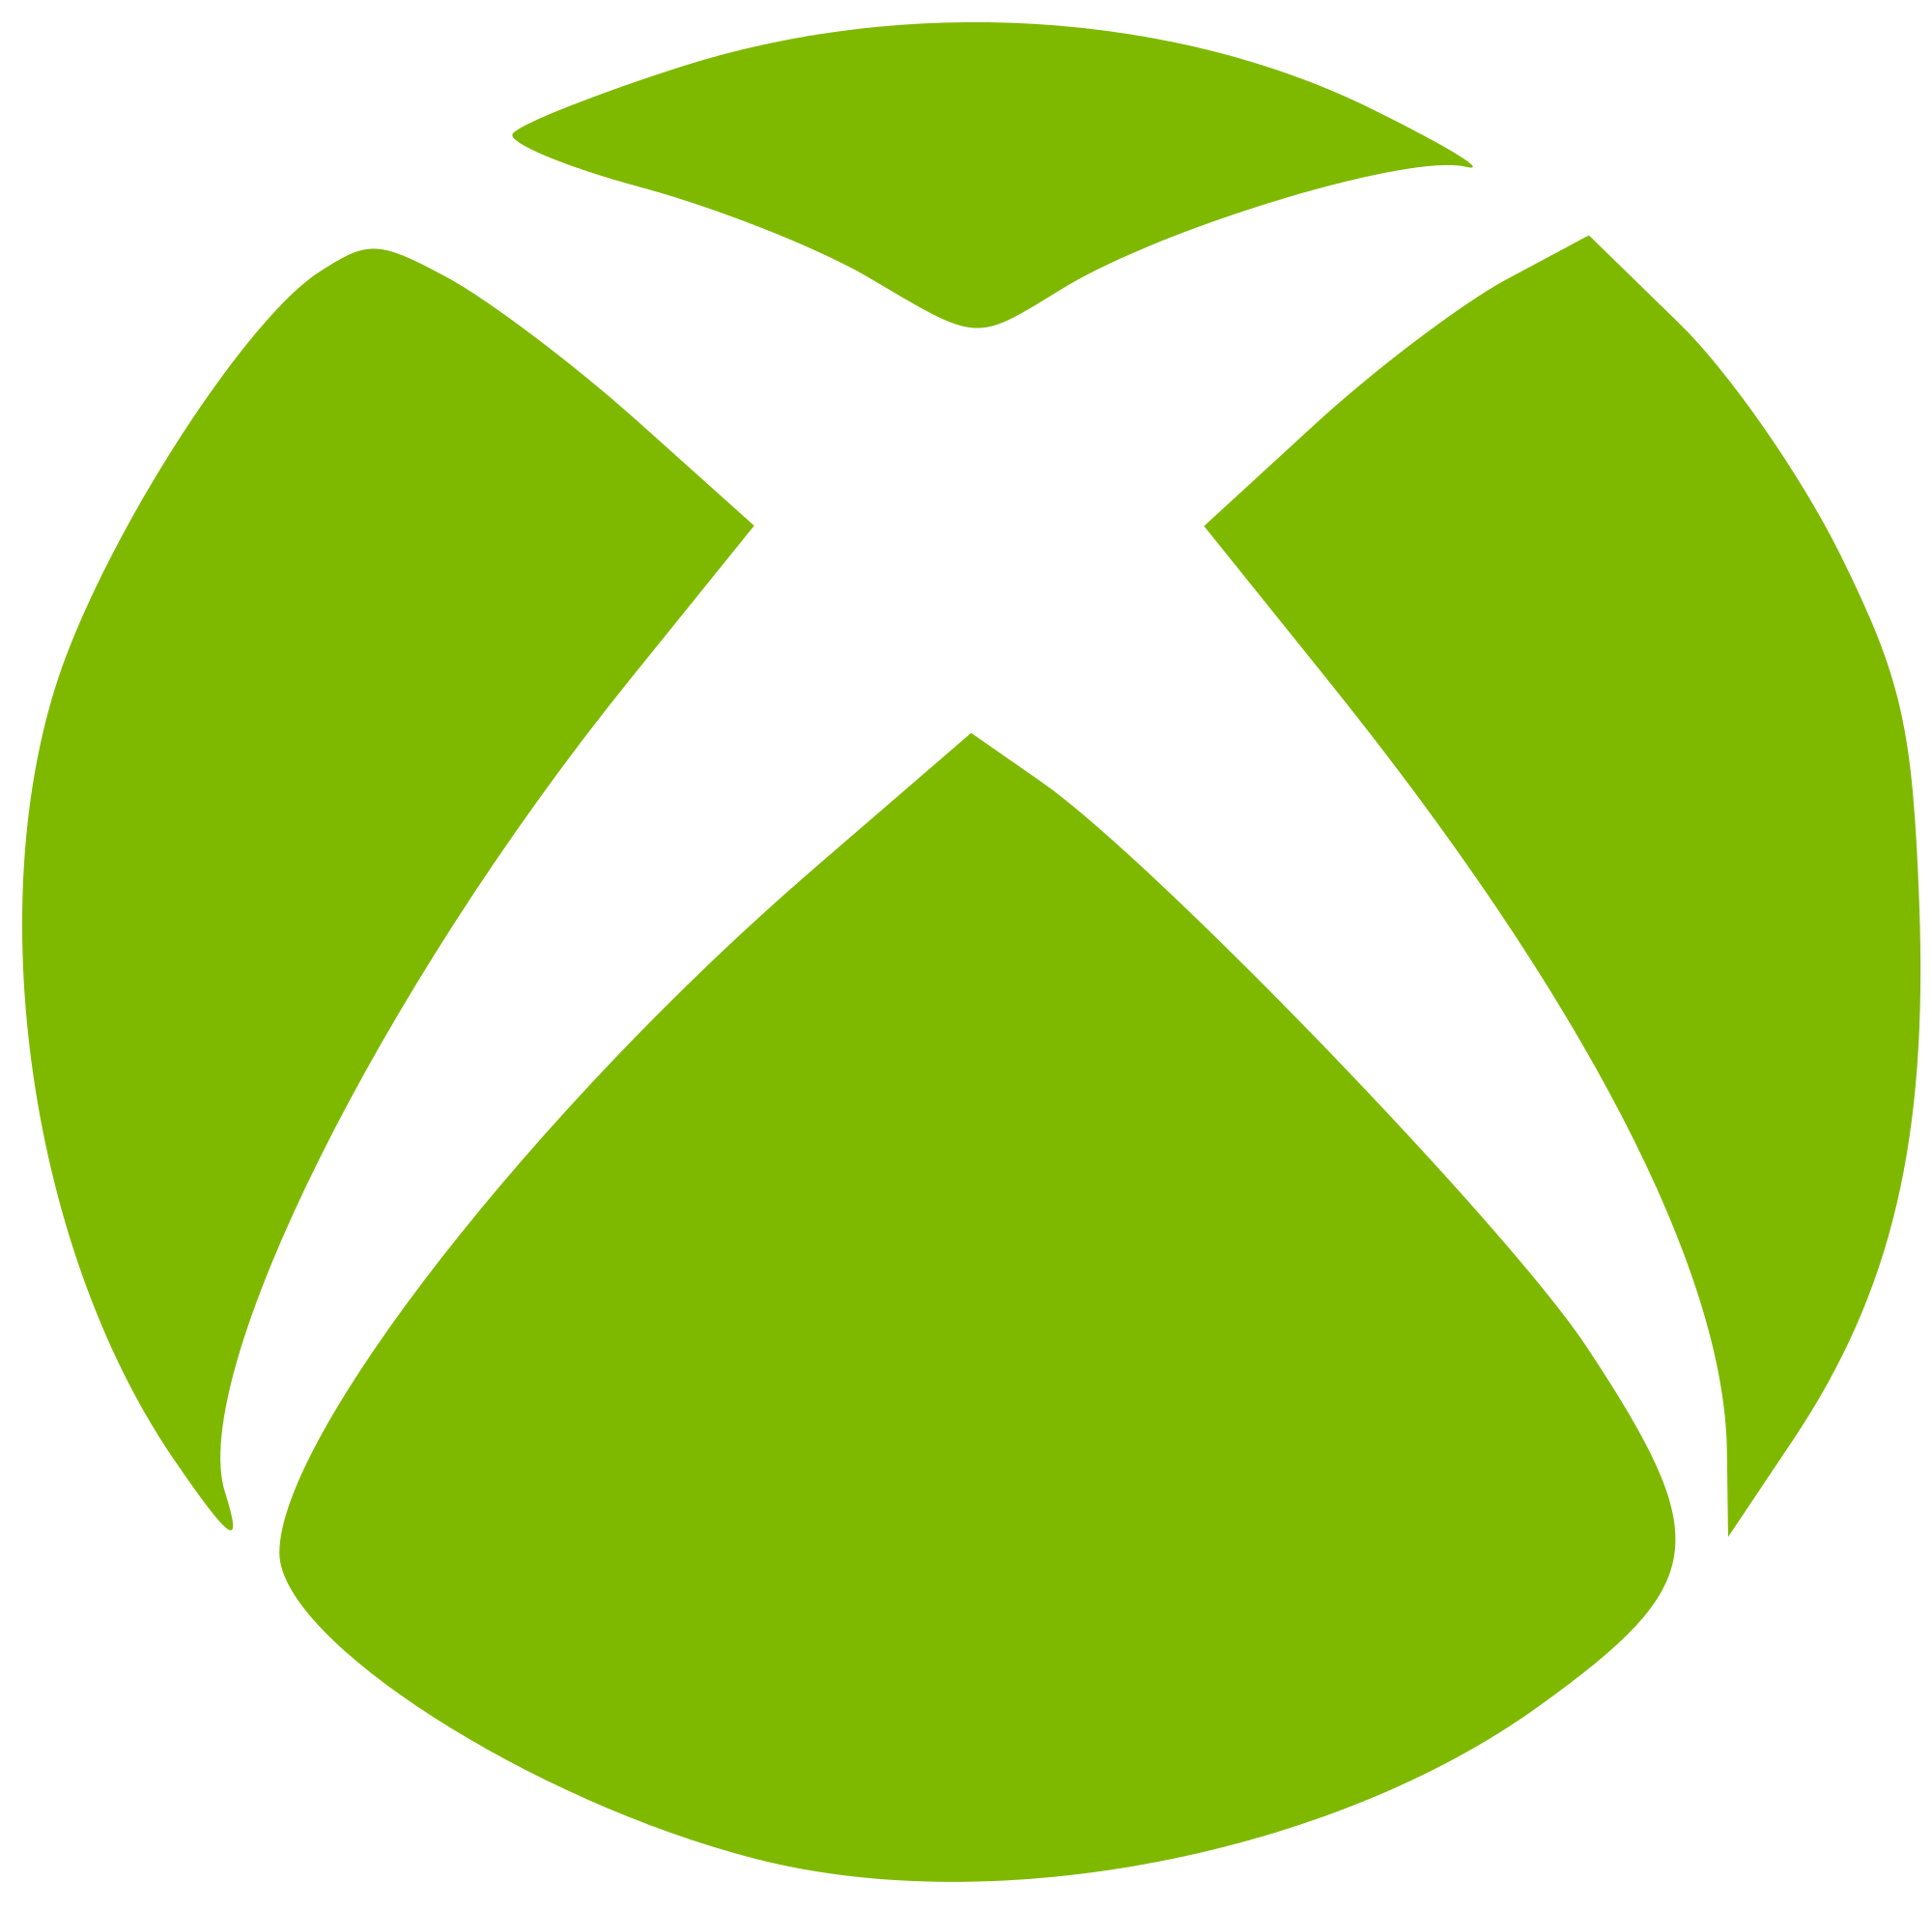 xbox live logo png